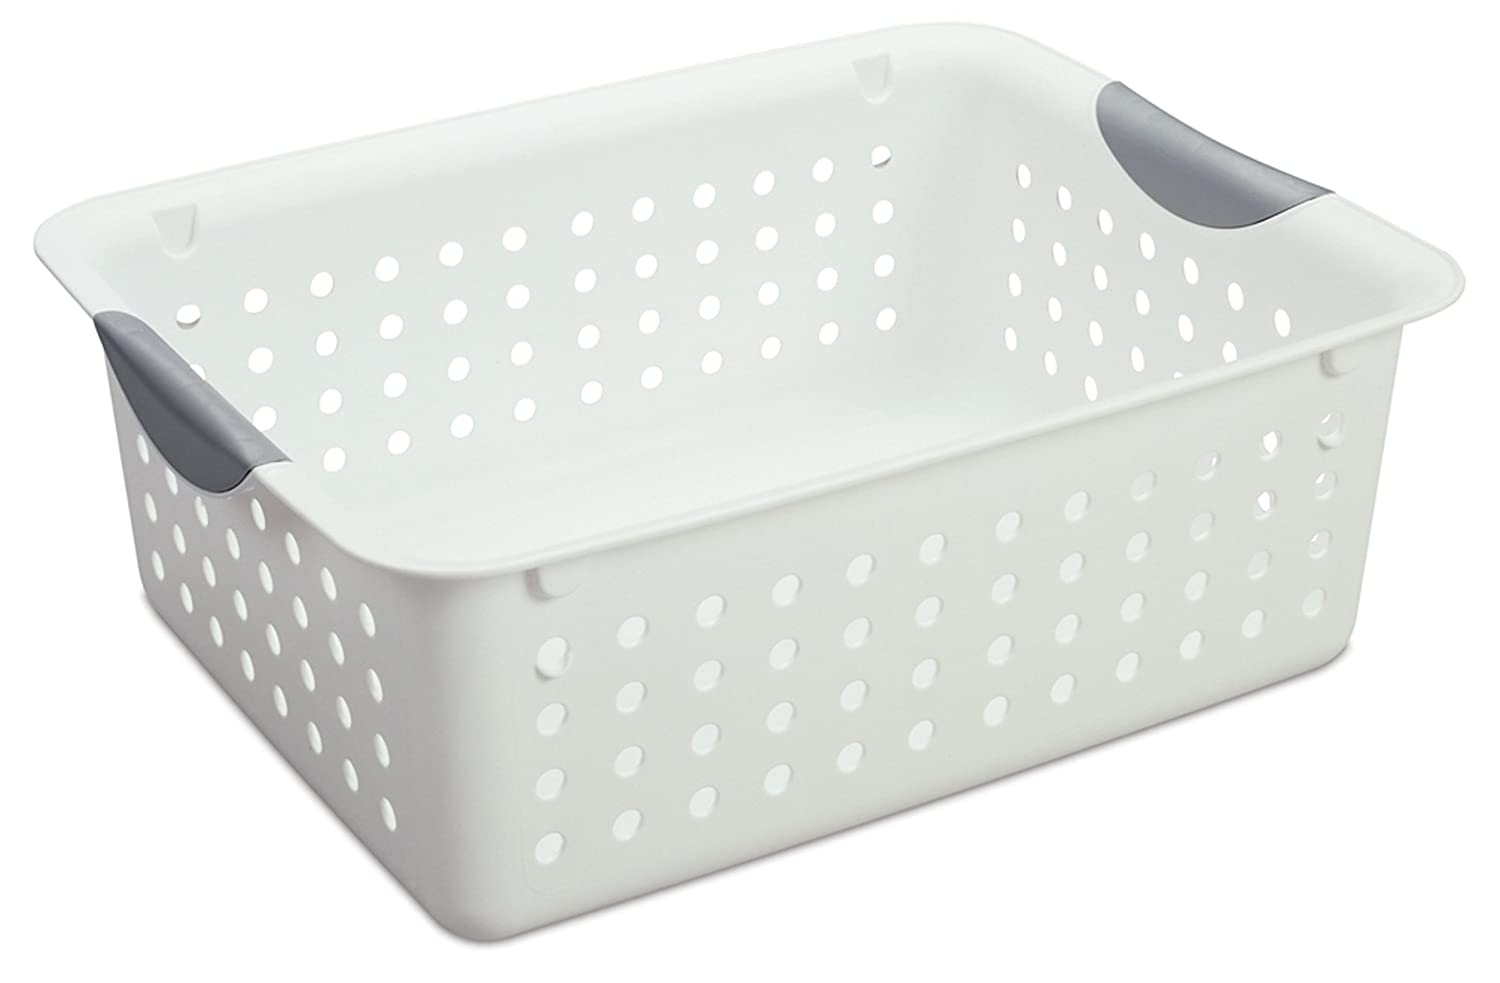 Amazon.com: Baskets & Bins: Home & Kitchen: Storage Baskets, Open